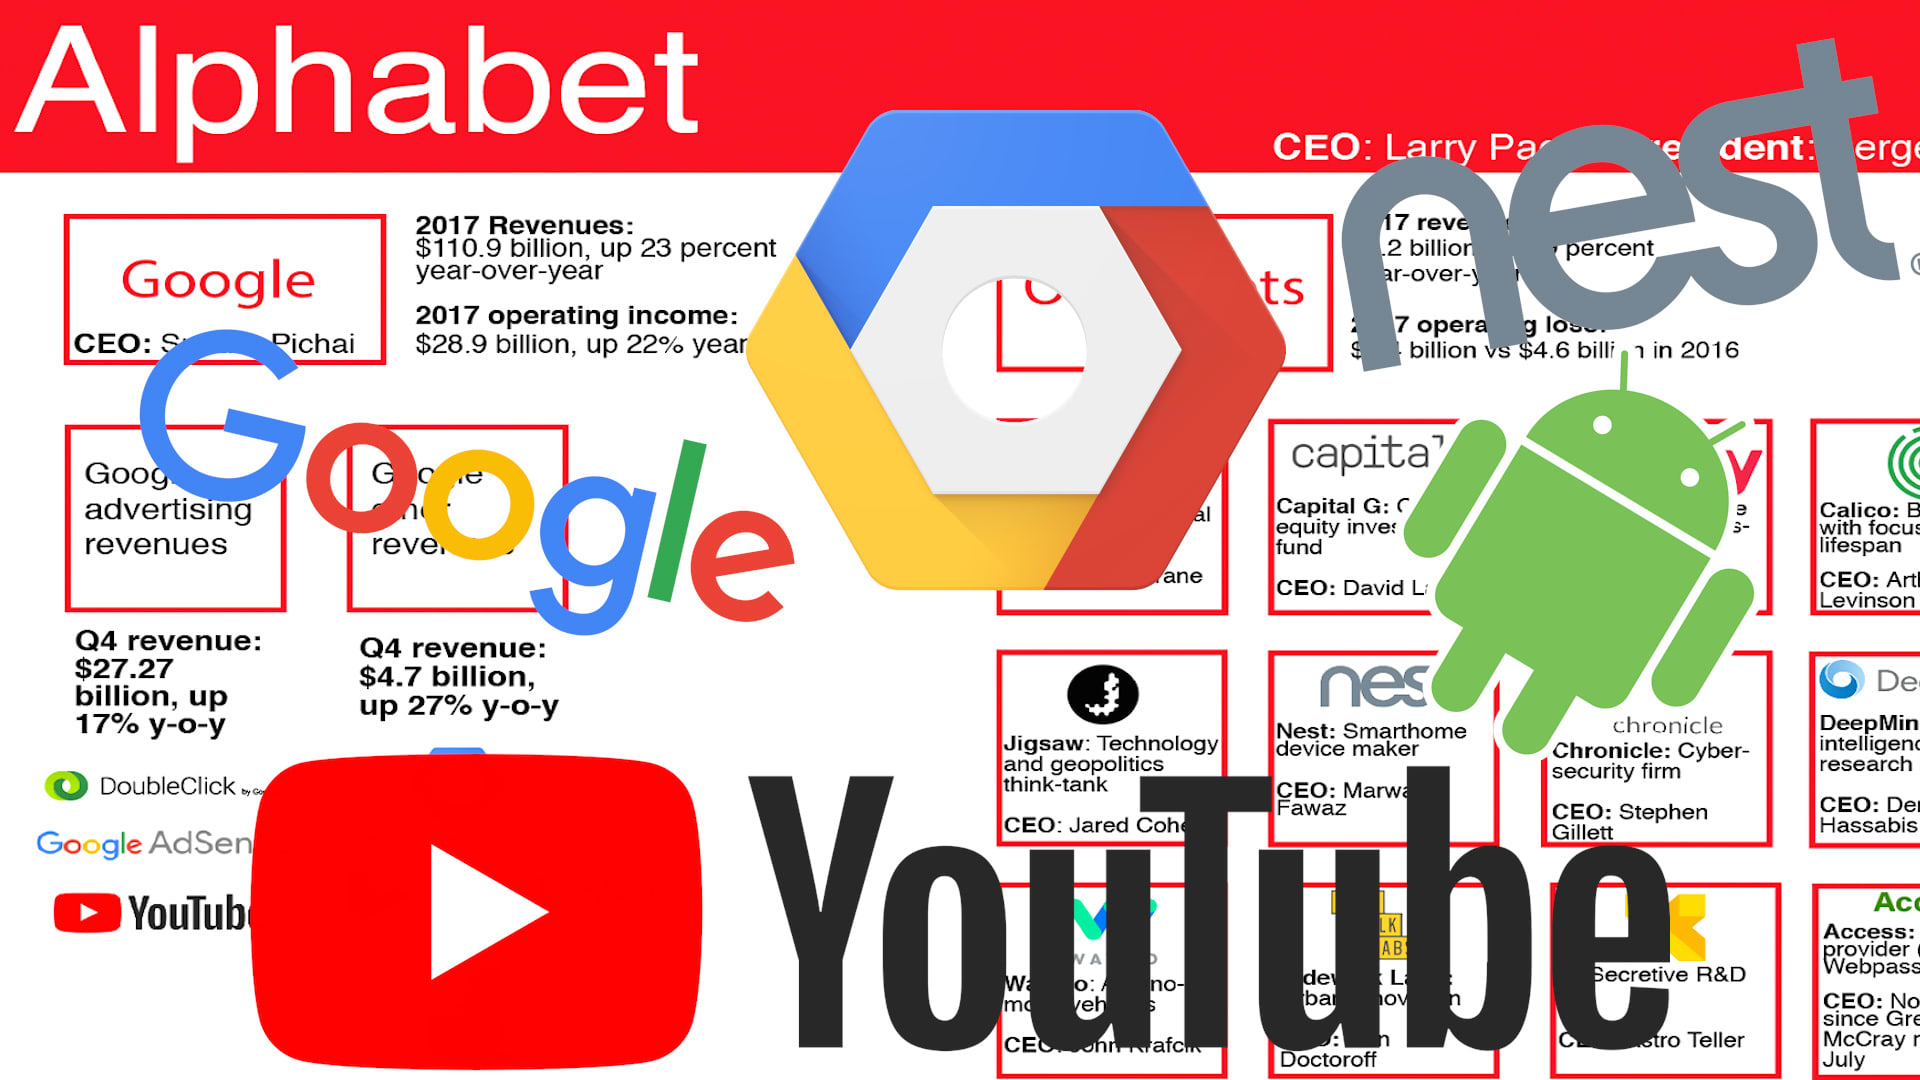 Alphabet is playing in a lot of areas, but is still a largely advertising  company